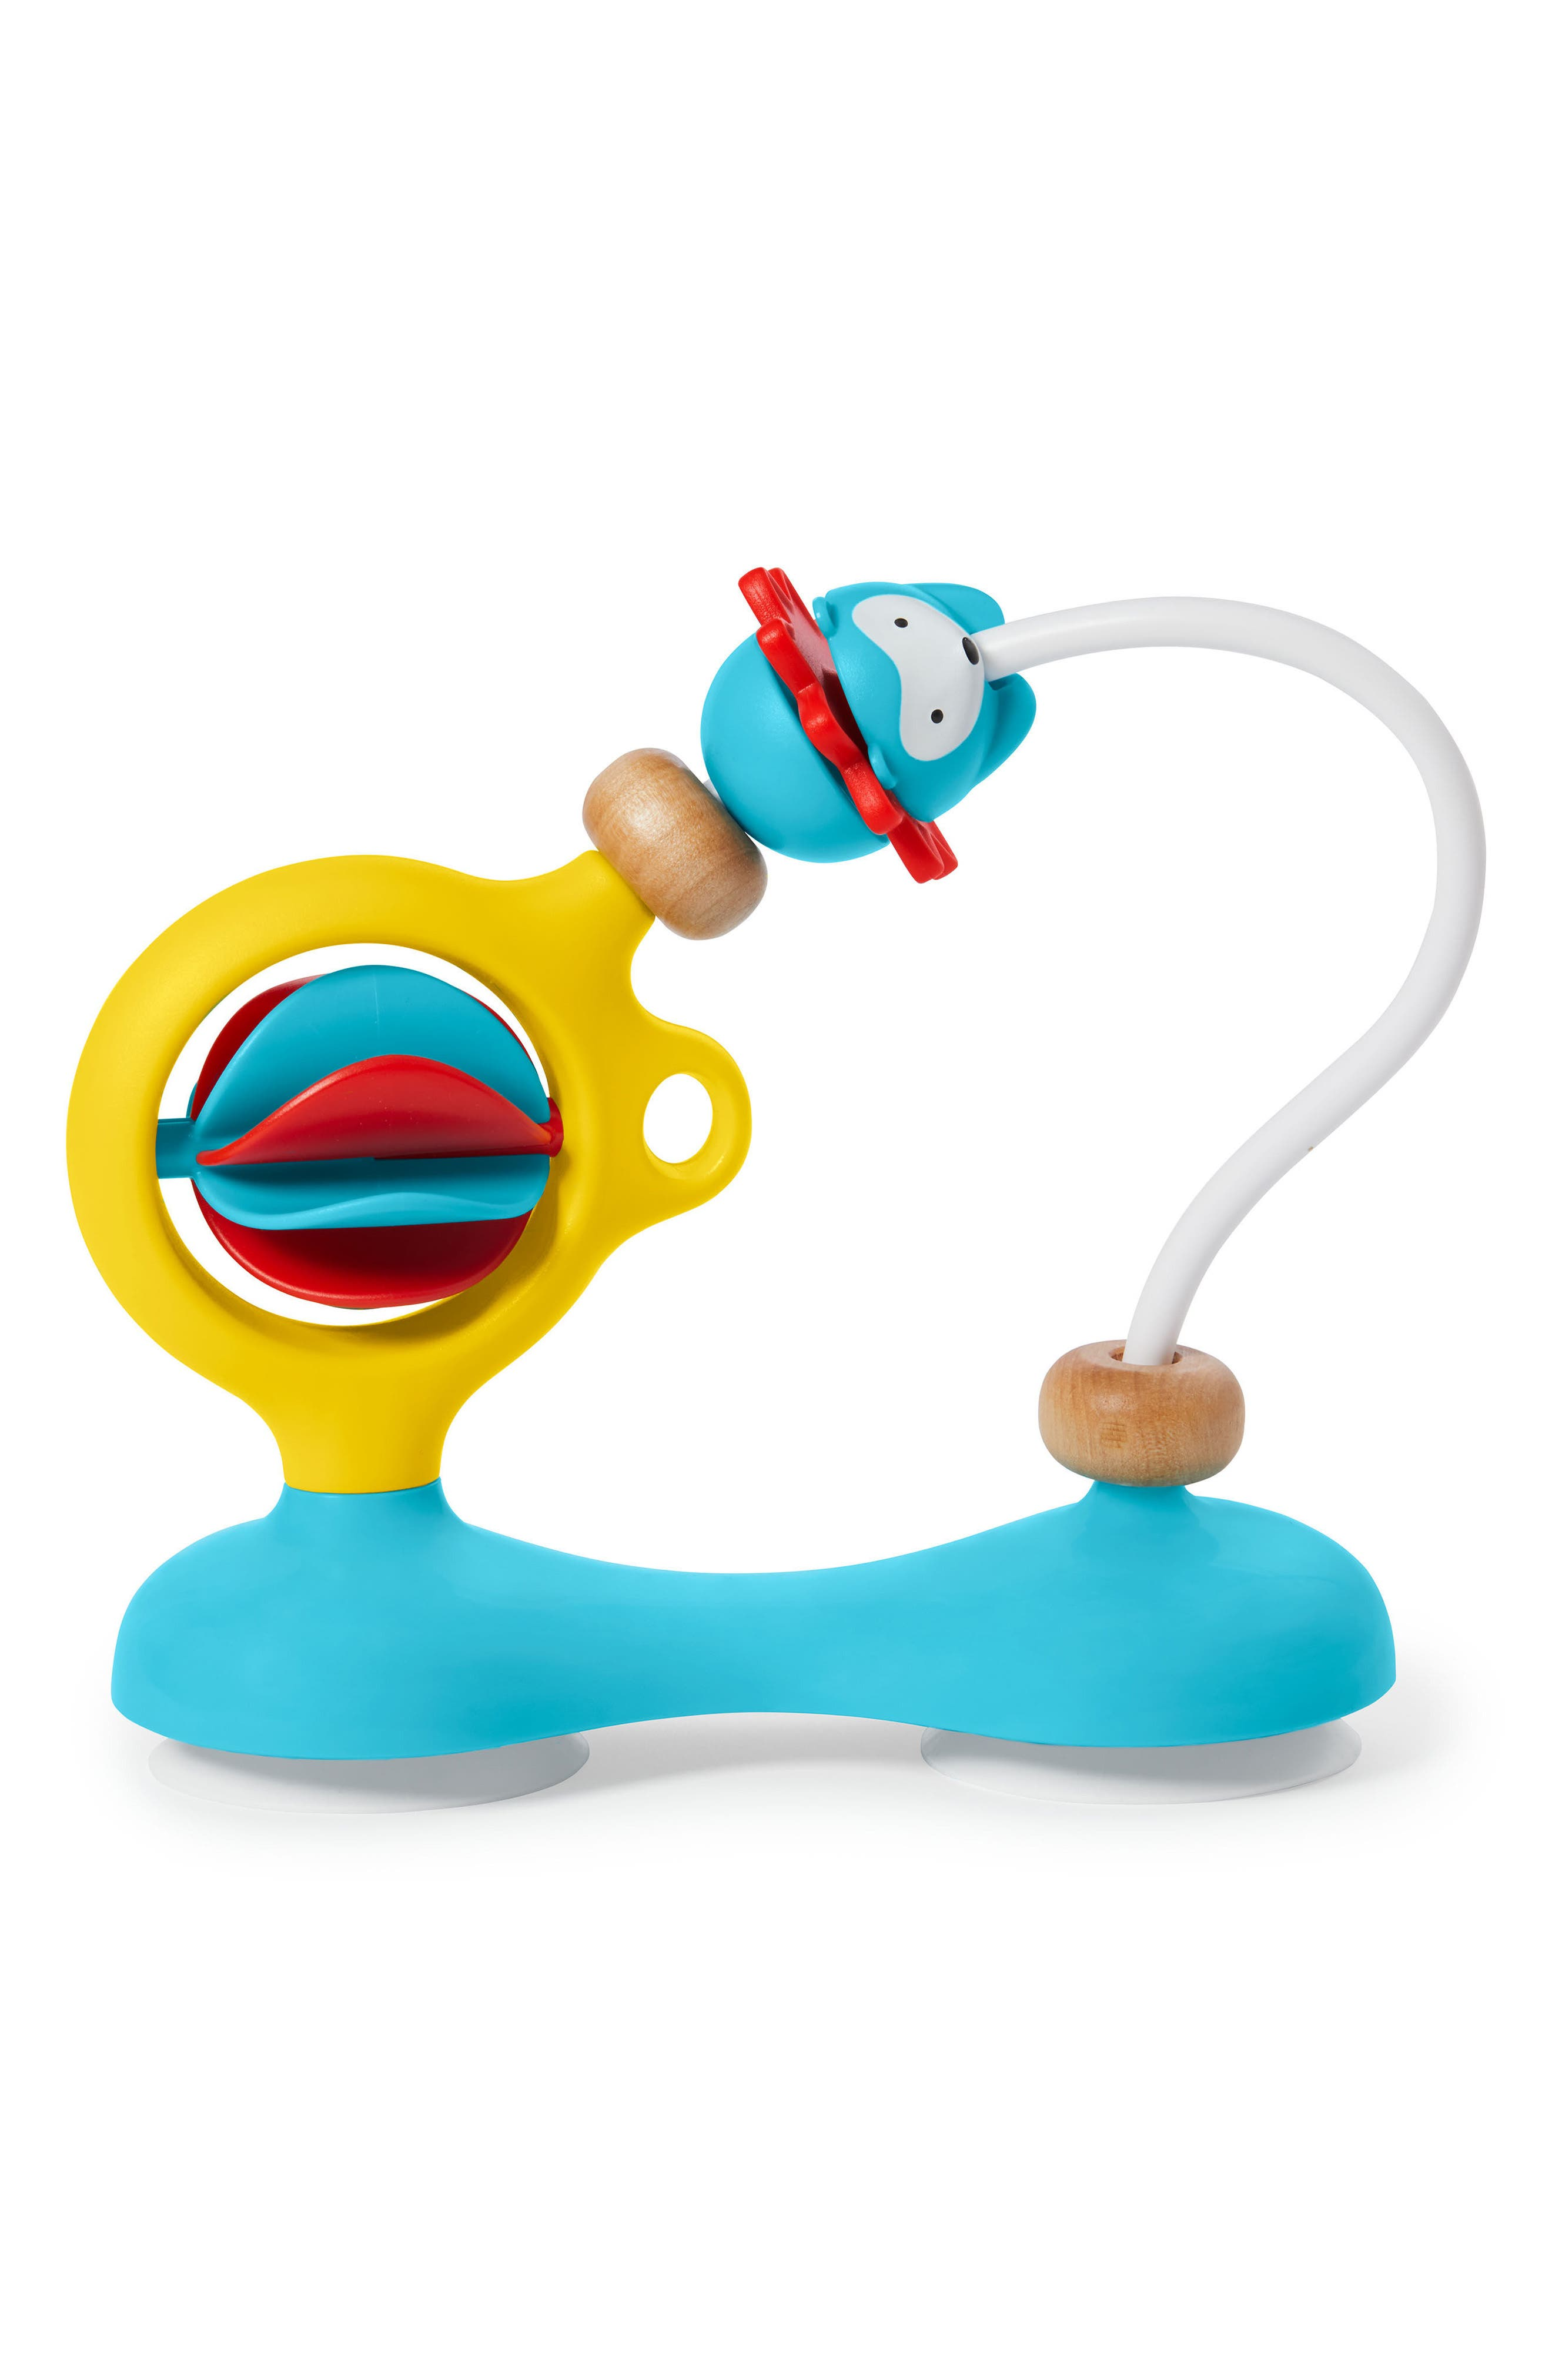 Explore N More Bead Mover Highchair Toy,                             Alternate thumbnail 5, color,                             Bead Mover